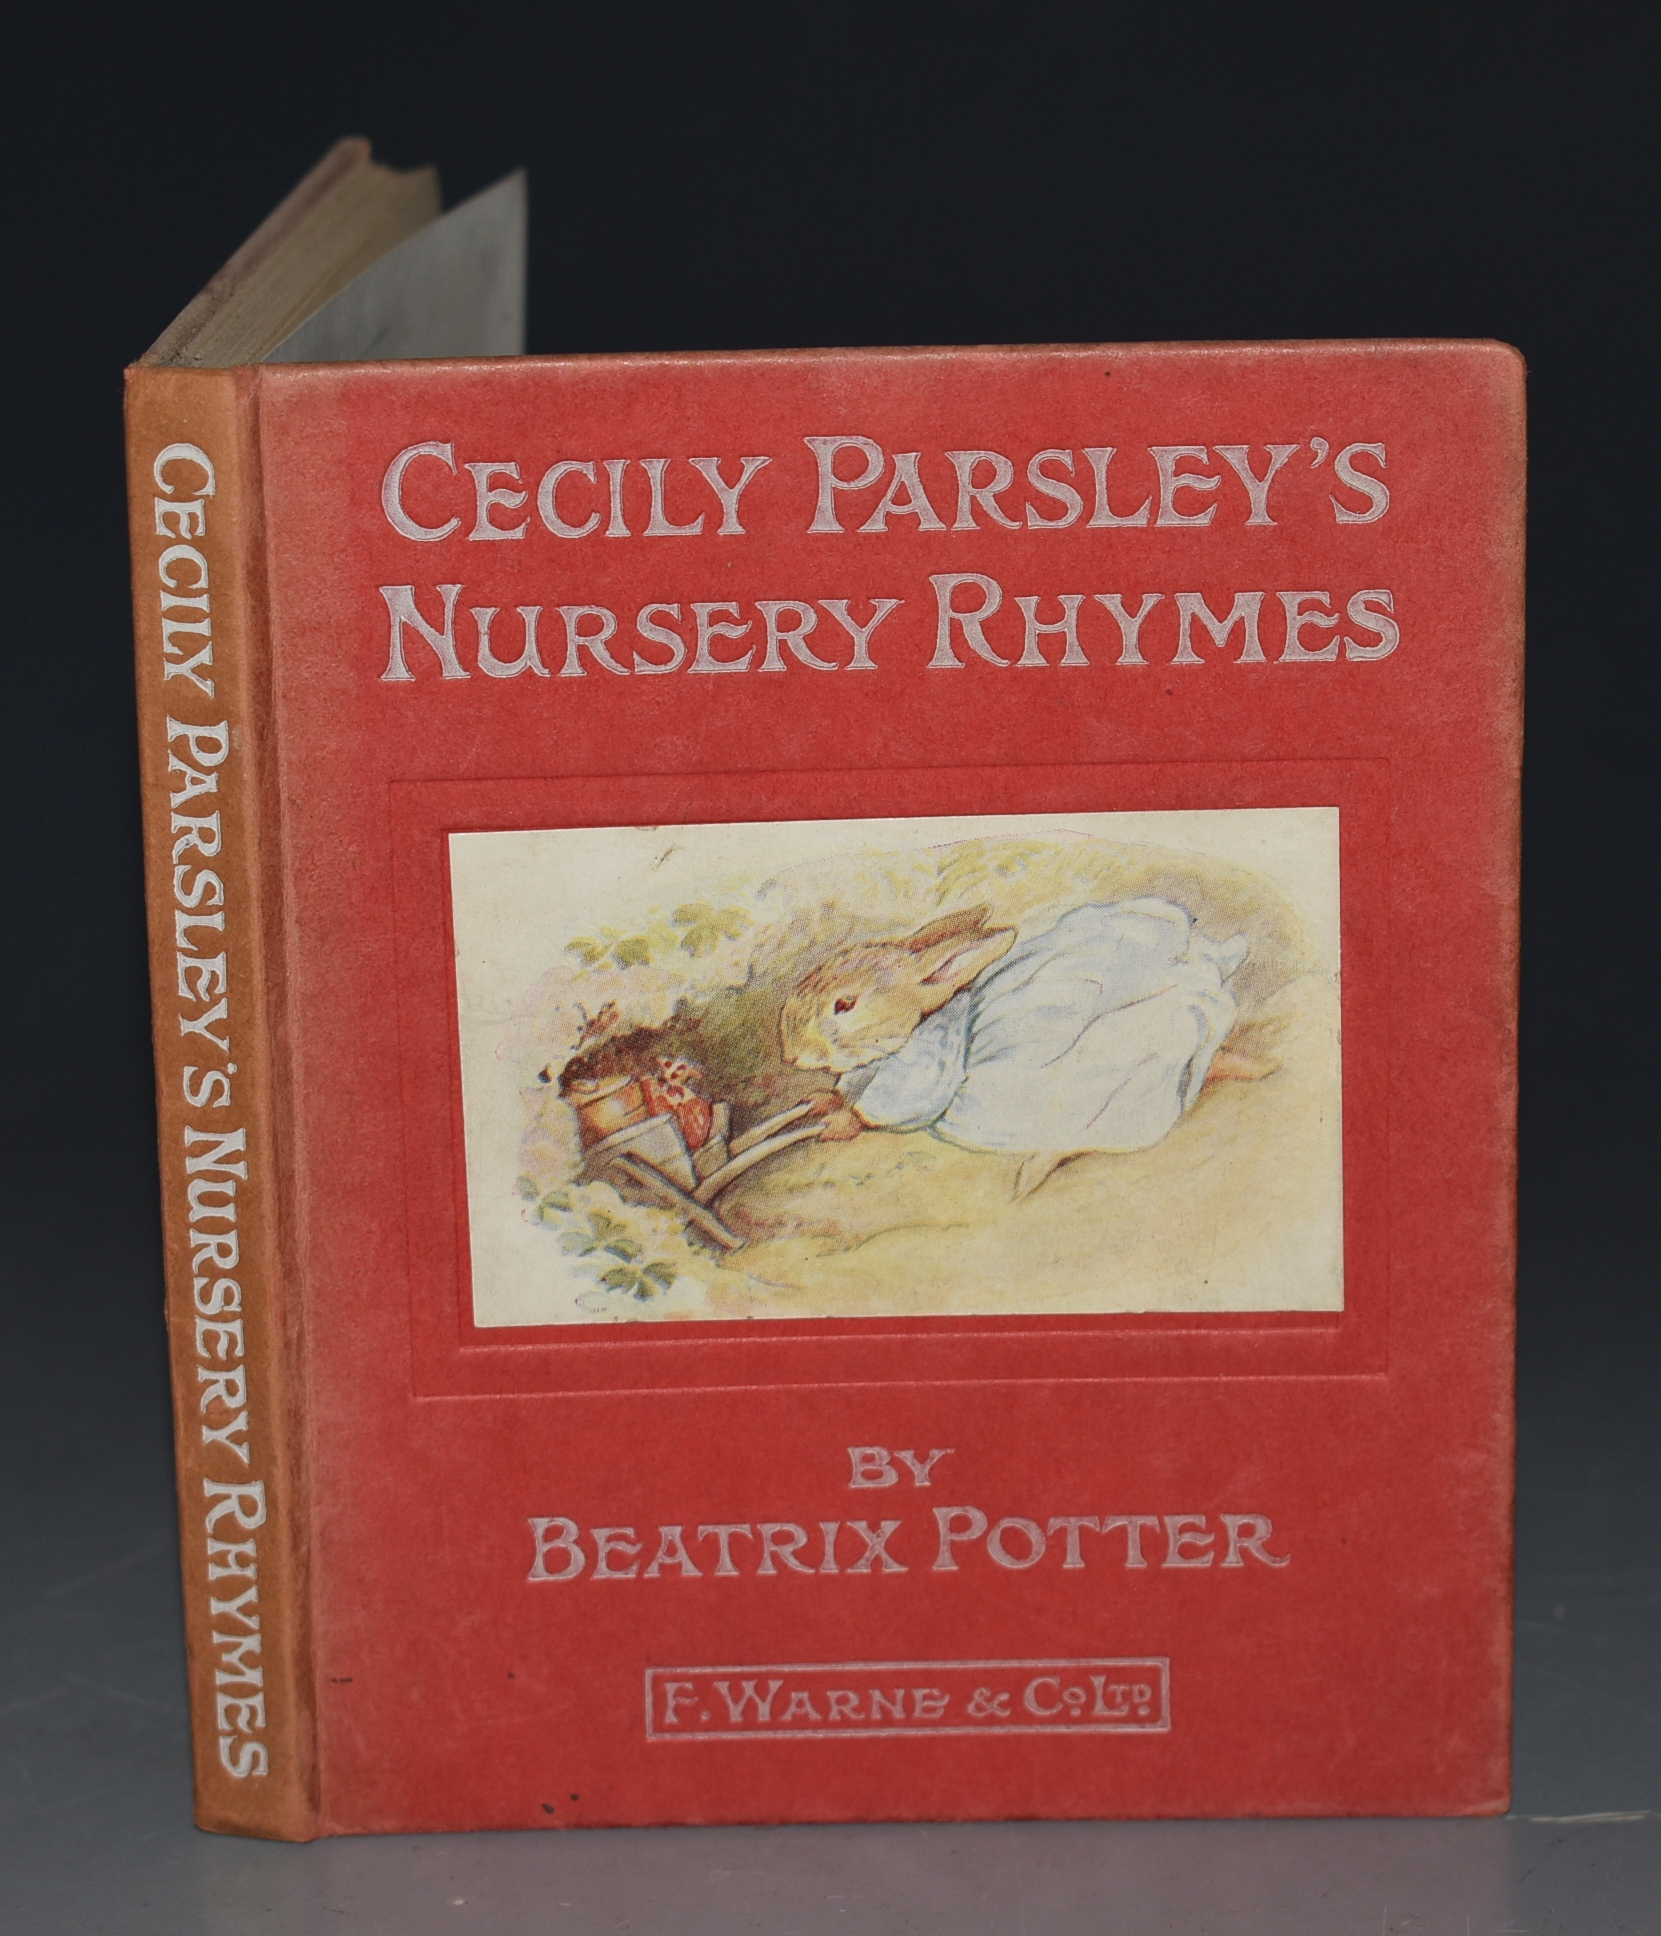 Image for Cecily Parsley's Nursery Rhymes.